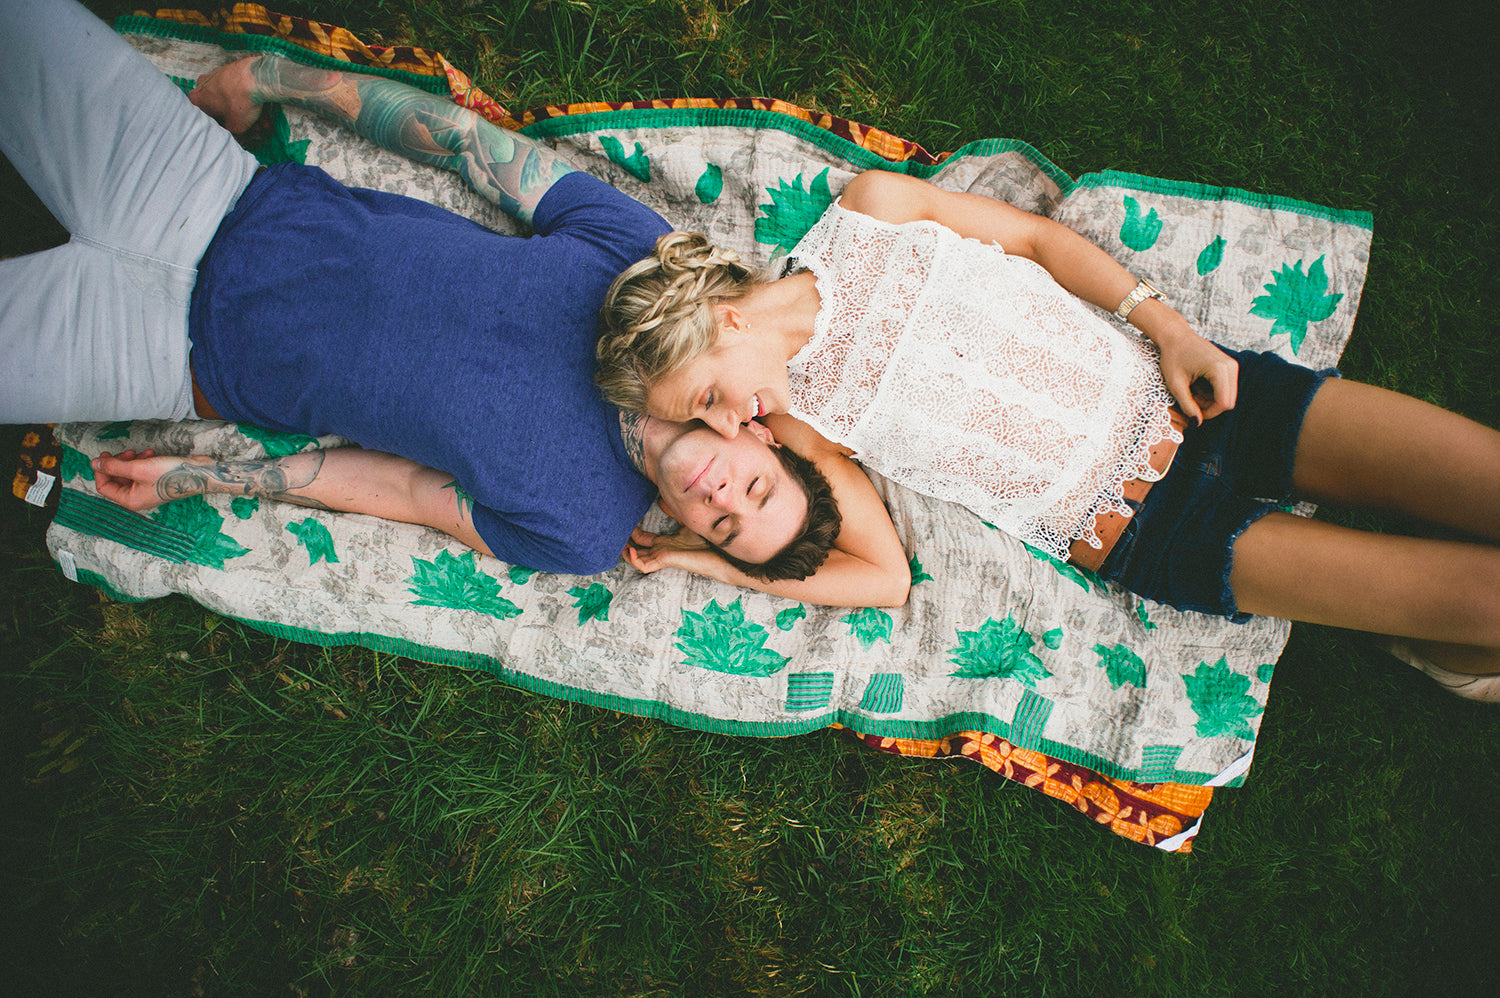 Meaningful Wedding Gift Ideas: Meaningful Wedding Gifts - Kantha Quilts & Throws